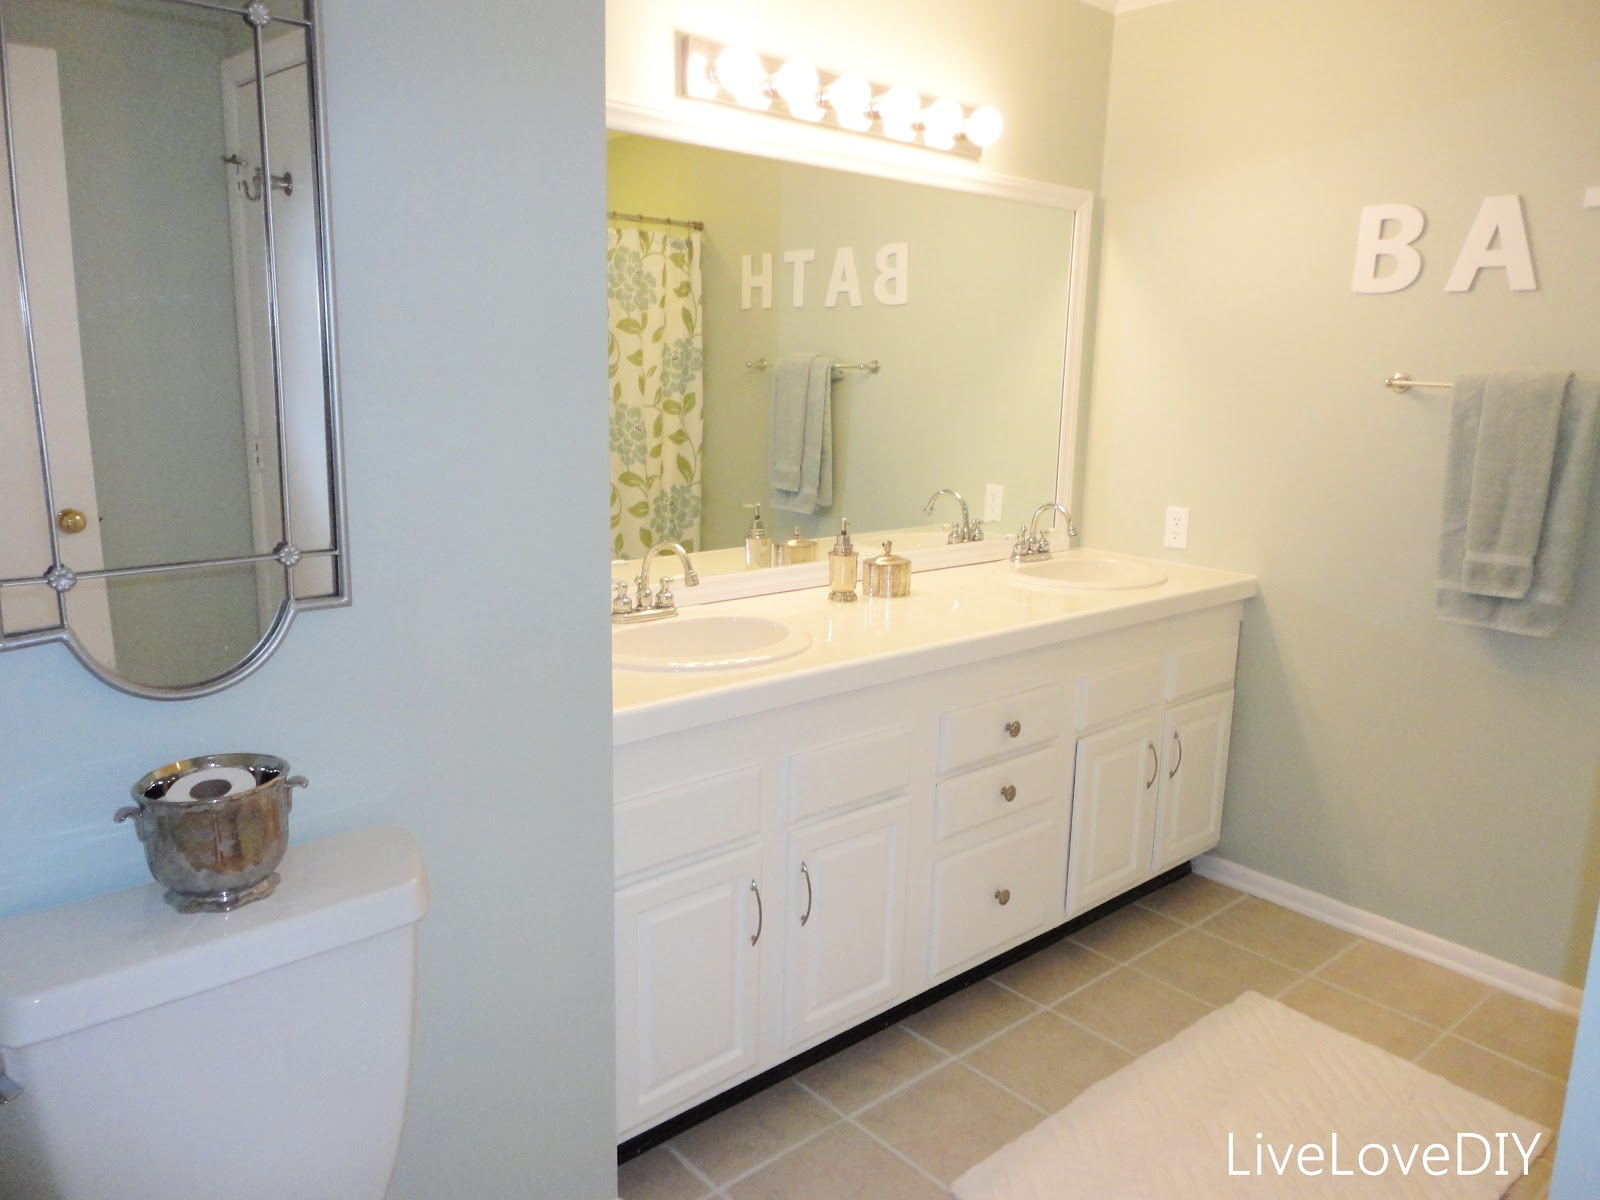 Easy Diy Ideas For Updating Older Bathrooms So Many Great Ideas Including How To Paint